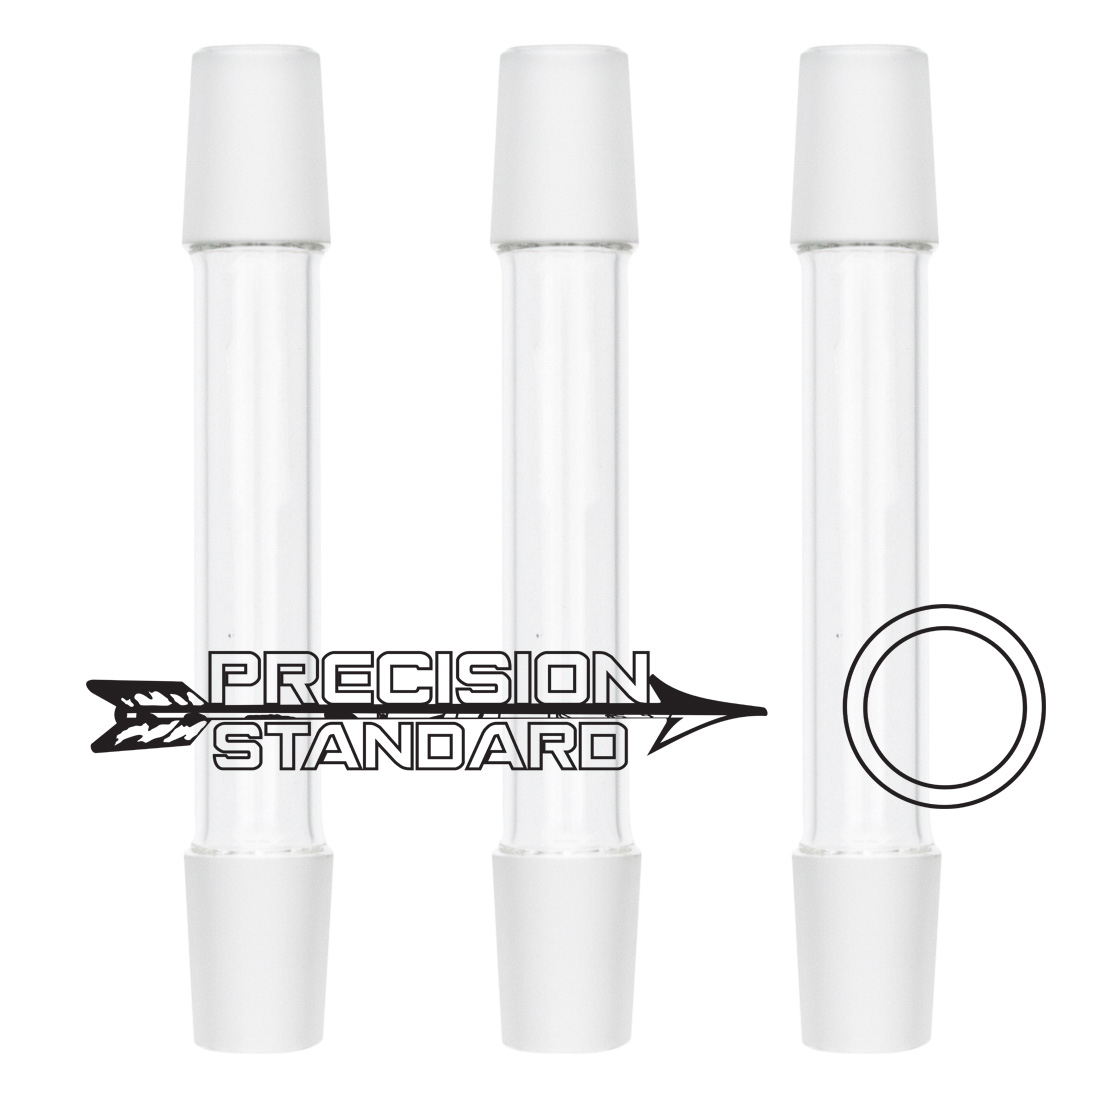 Precision 19/26 Male GG Joint